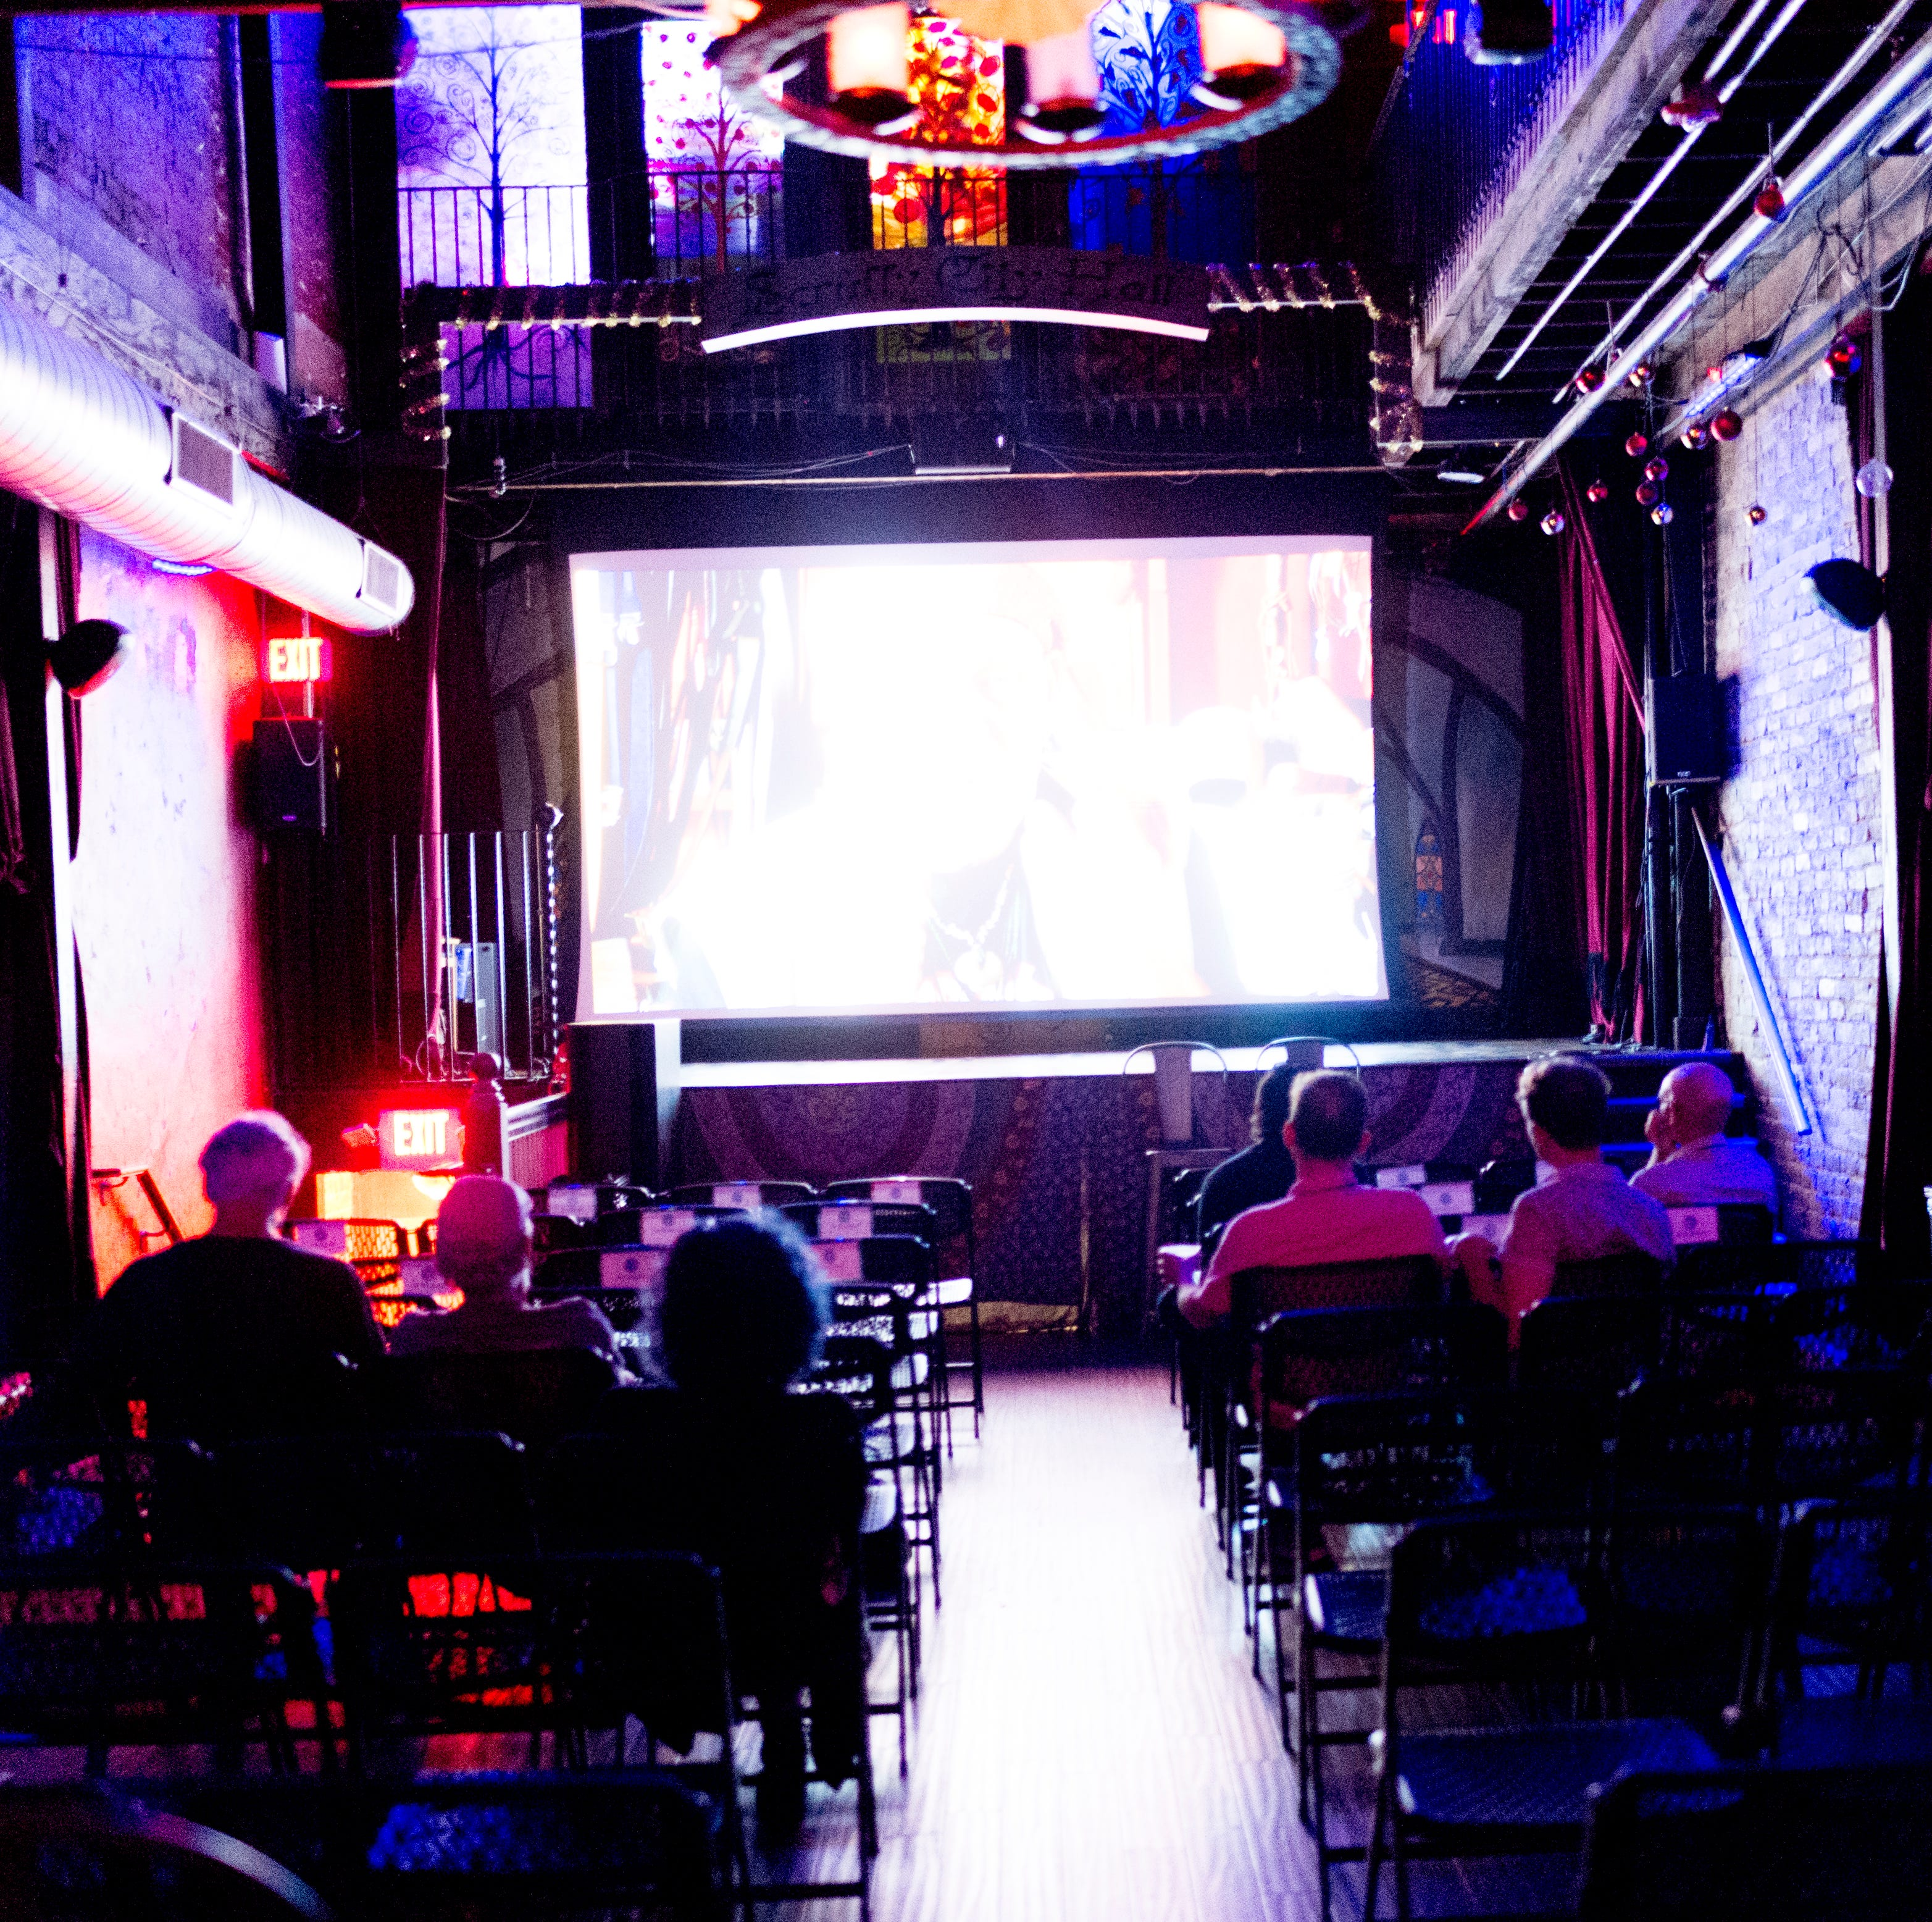 What's so funny? Check out these 5 thriving comedy spots in Knoxville